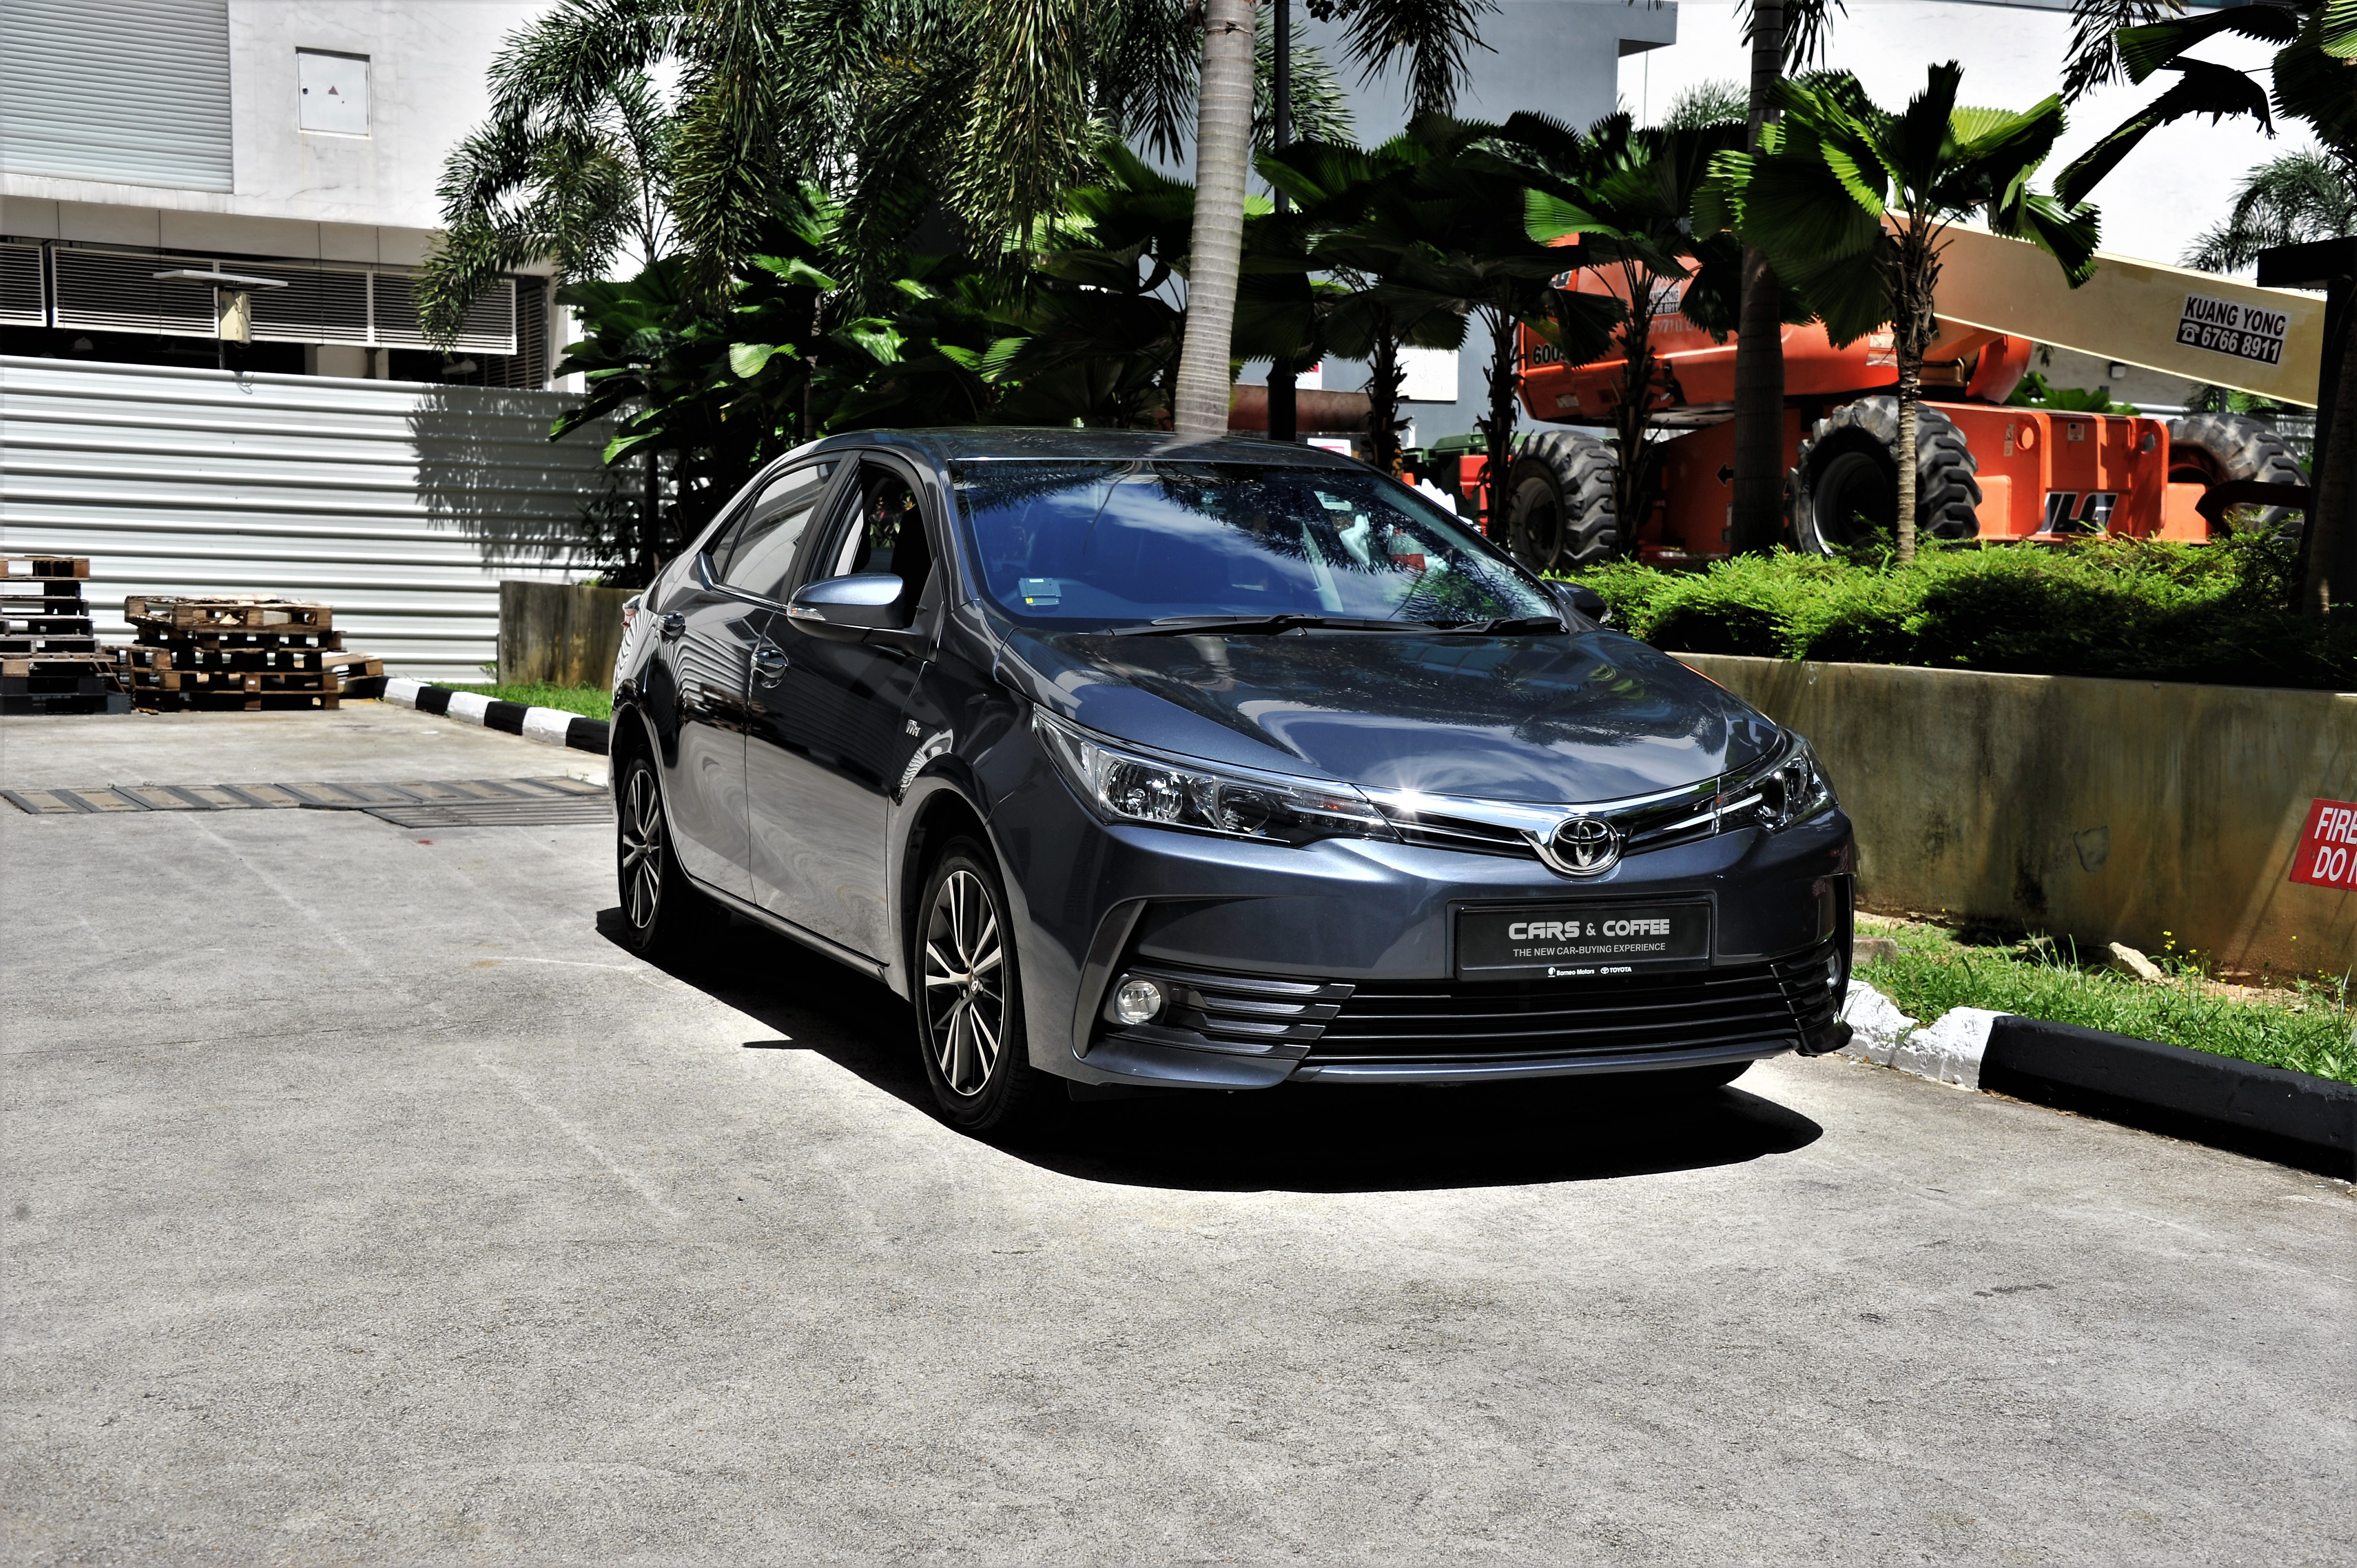 Certified Pre-Owned Toyota Corolla Altis 1.6A Standard   Cars and Coffee Singapore